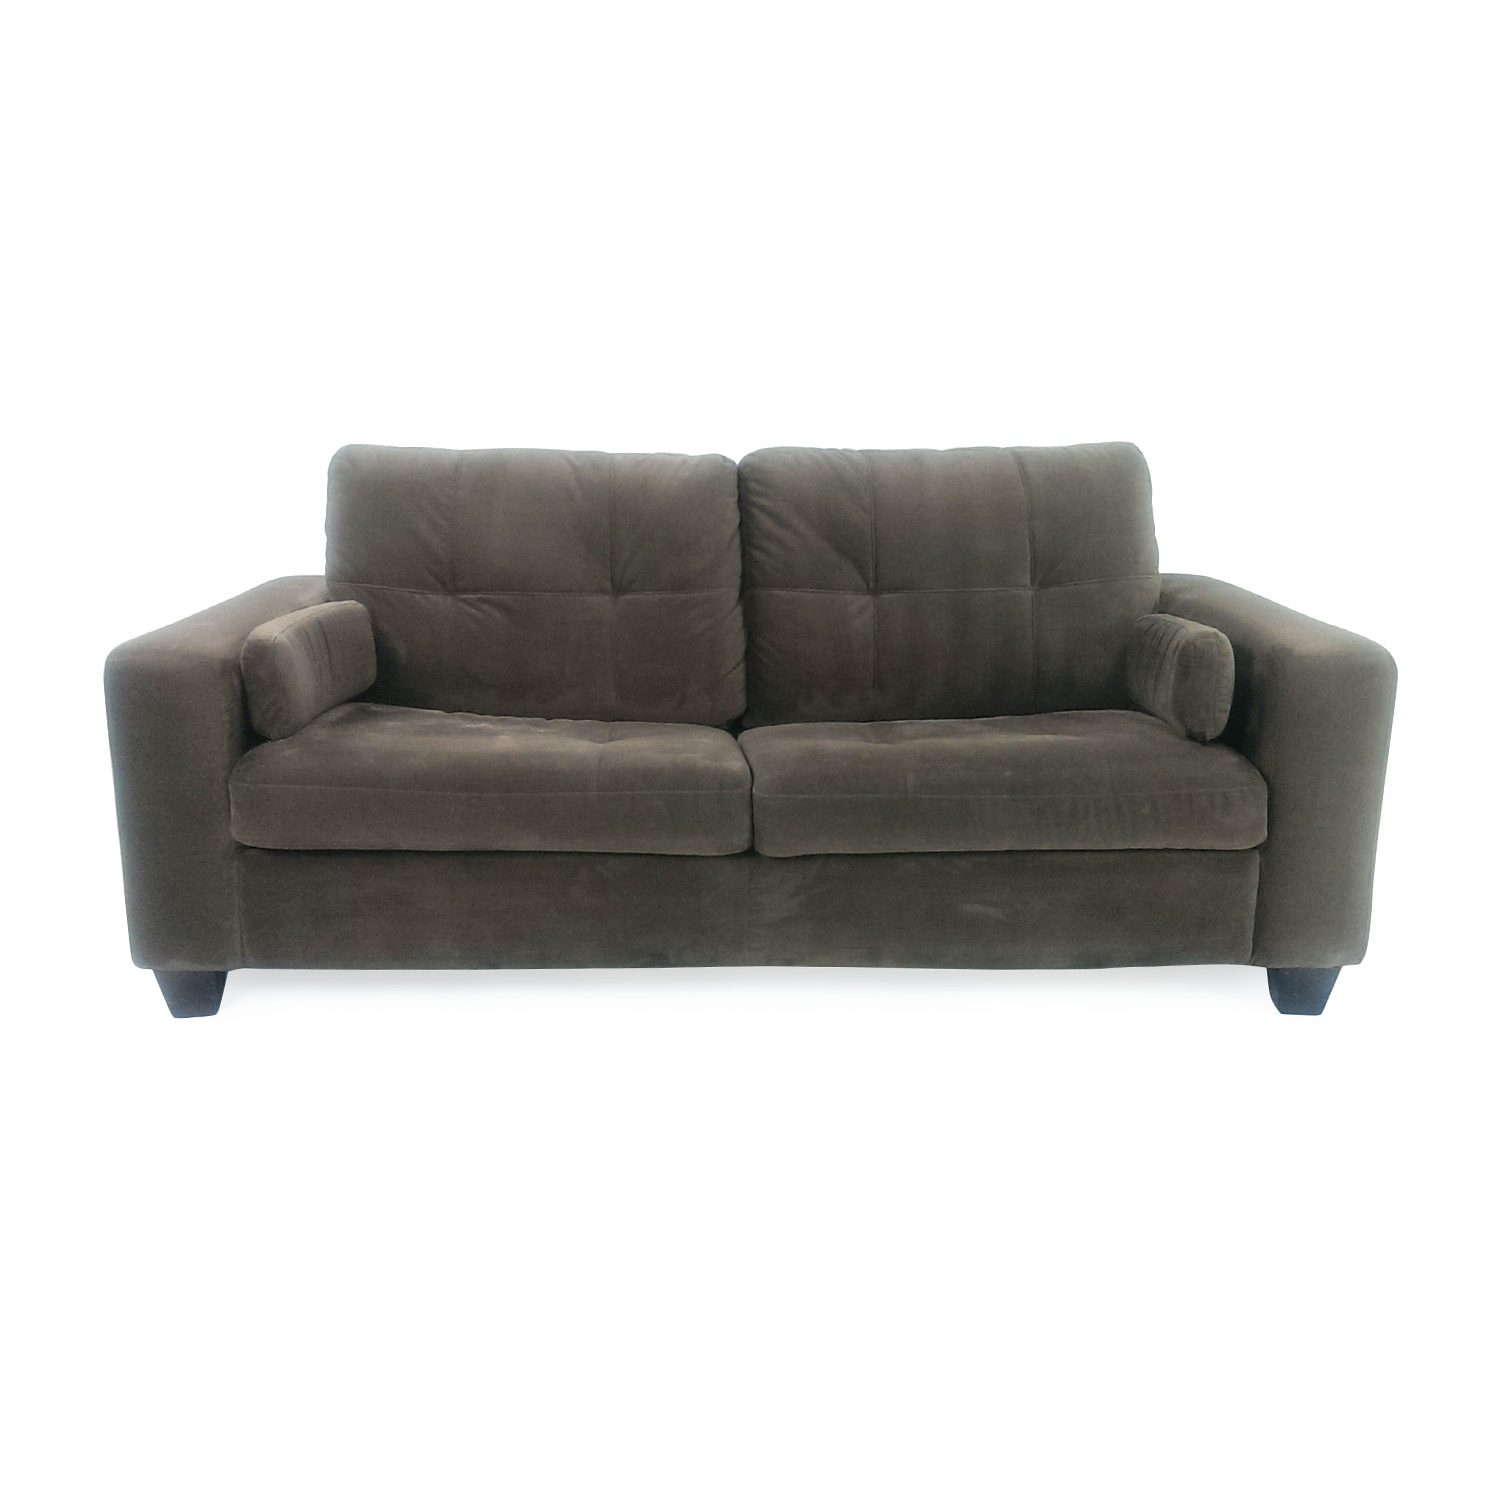 secondhand leather sofas cotton velvet sofa teachfamilies org